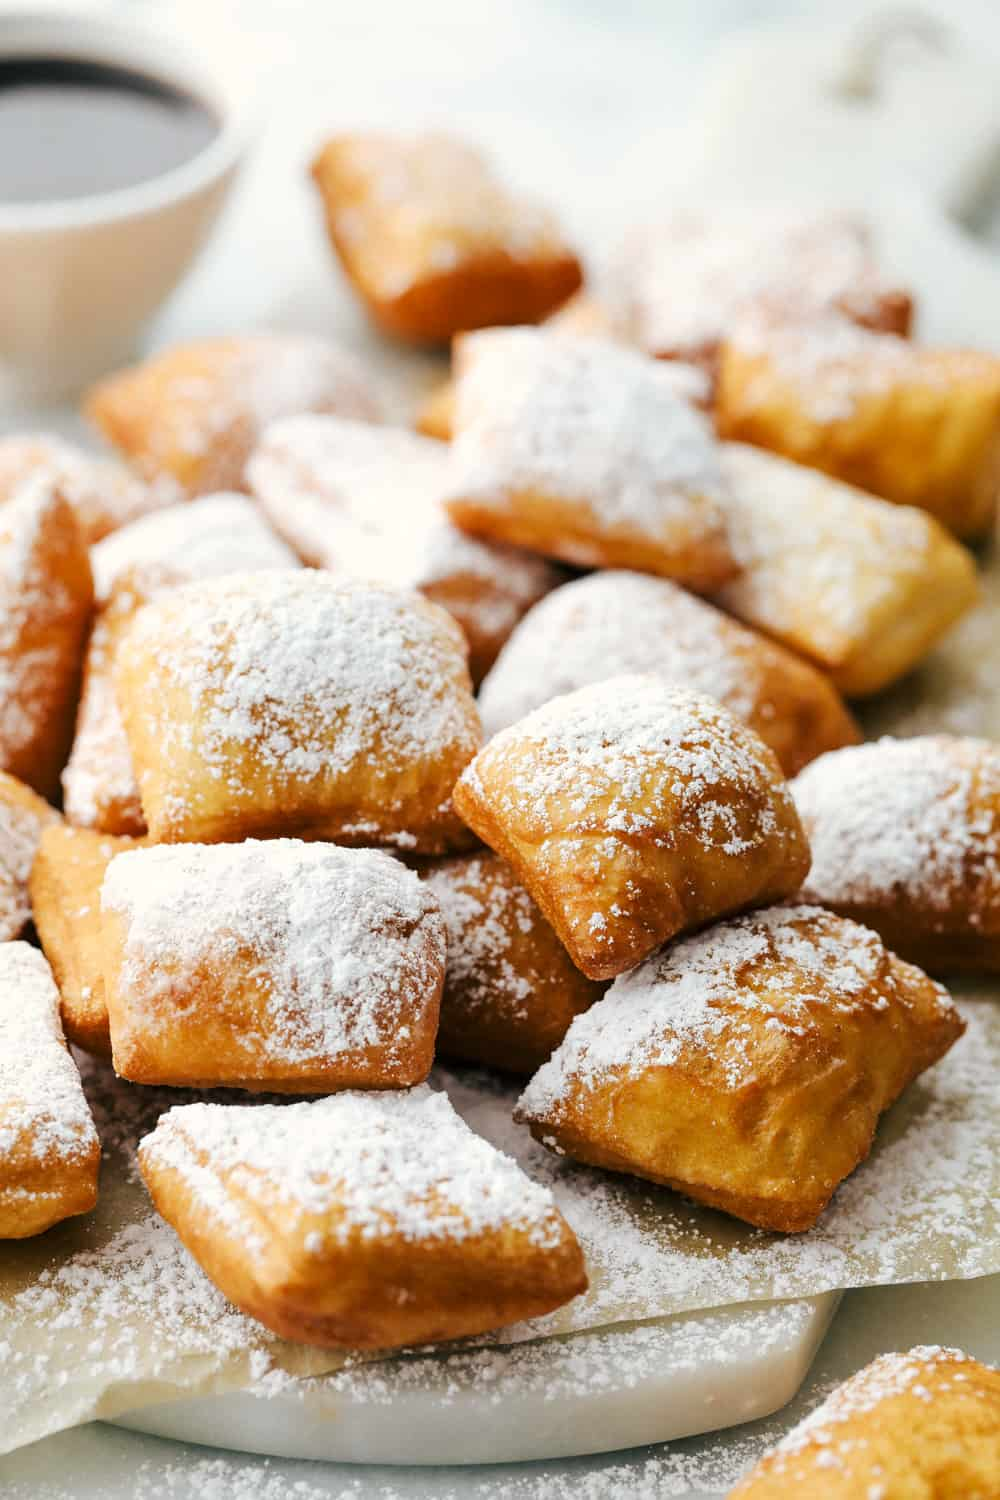 Several beignets on a cutting board sprinkled with powder sugar and chocolate syrup on the side.